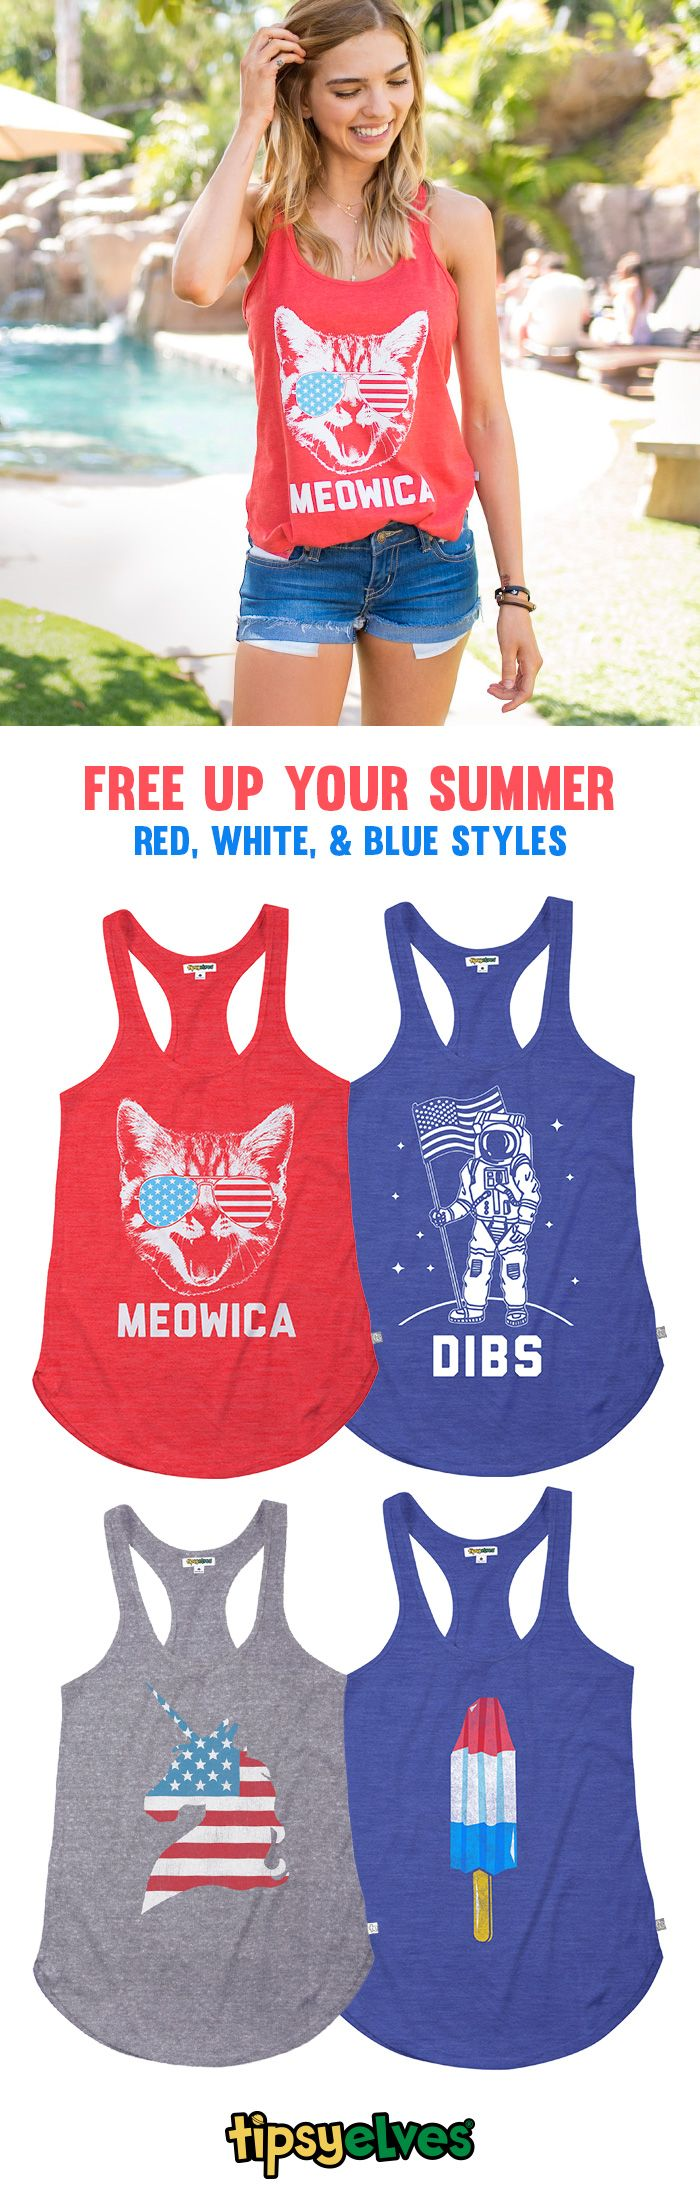 Love of country may be a concept that means different things to different people, but everyone can agree that wearing a stylish depiction of the flag is pretty patriotic. Our women's American flag clothing presents dozens of ways to stay true to the red, white, and blue—while looking fantastic. So Free up your Summer with patriotic tanks, swimsuits, rompers, dresses and more!